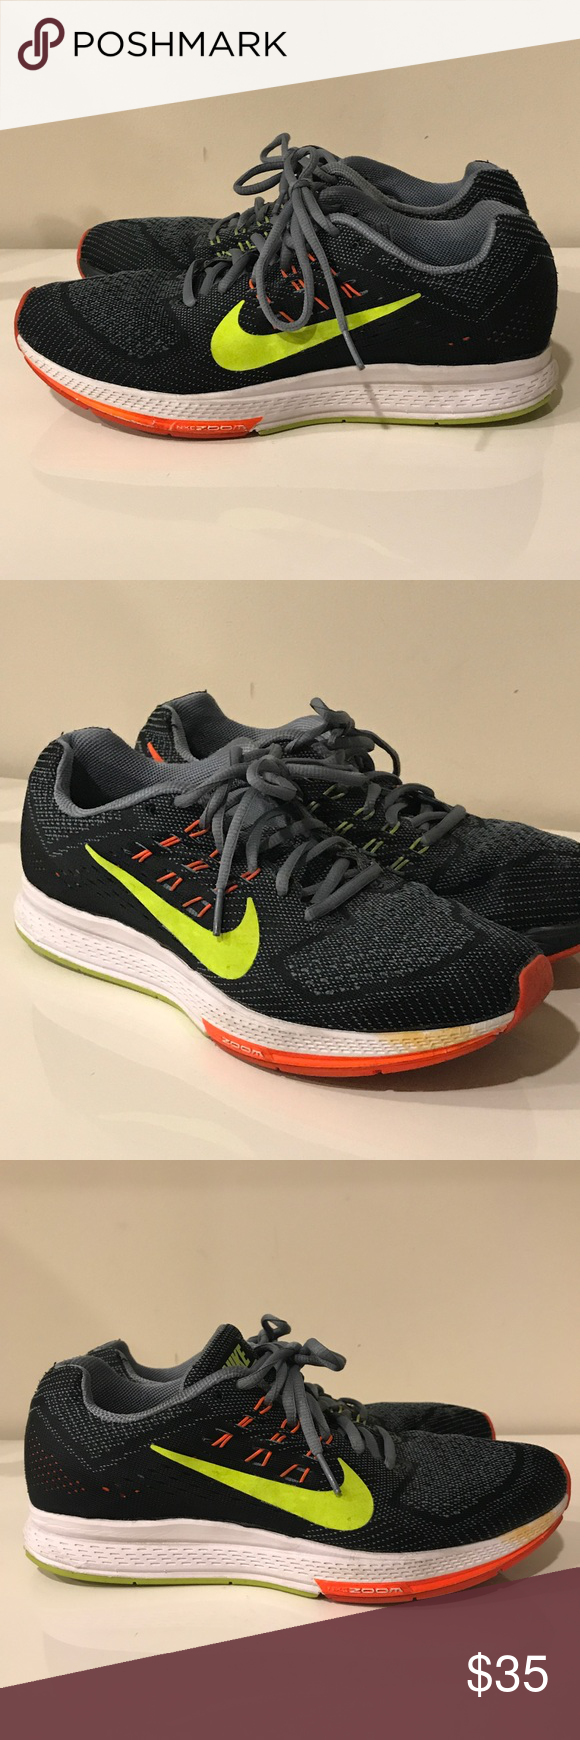 Nike Sneakers Boys size 7.5 (conversion for woman is 8.5) Nike Sneakers, not